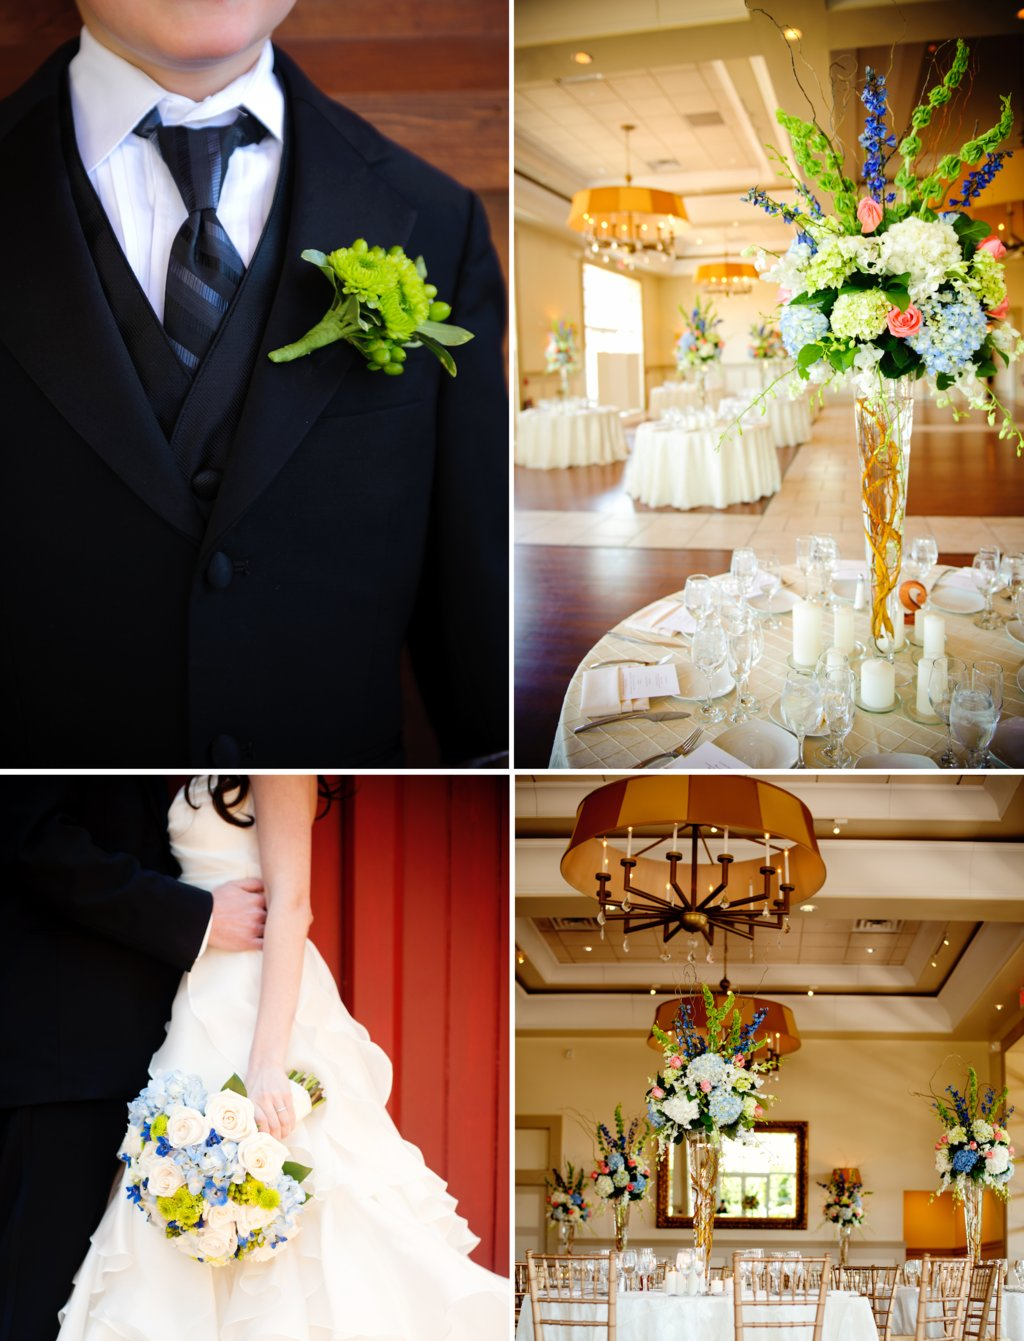 Elegant-real-wedding-with-simple-details-topiary-centerpieces-blue-ivory-green-bouquet.full